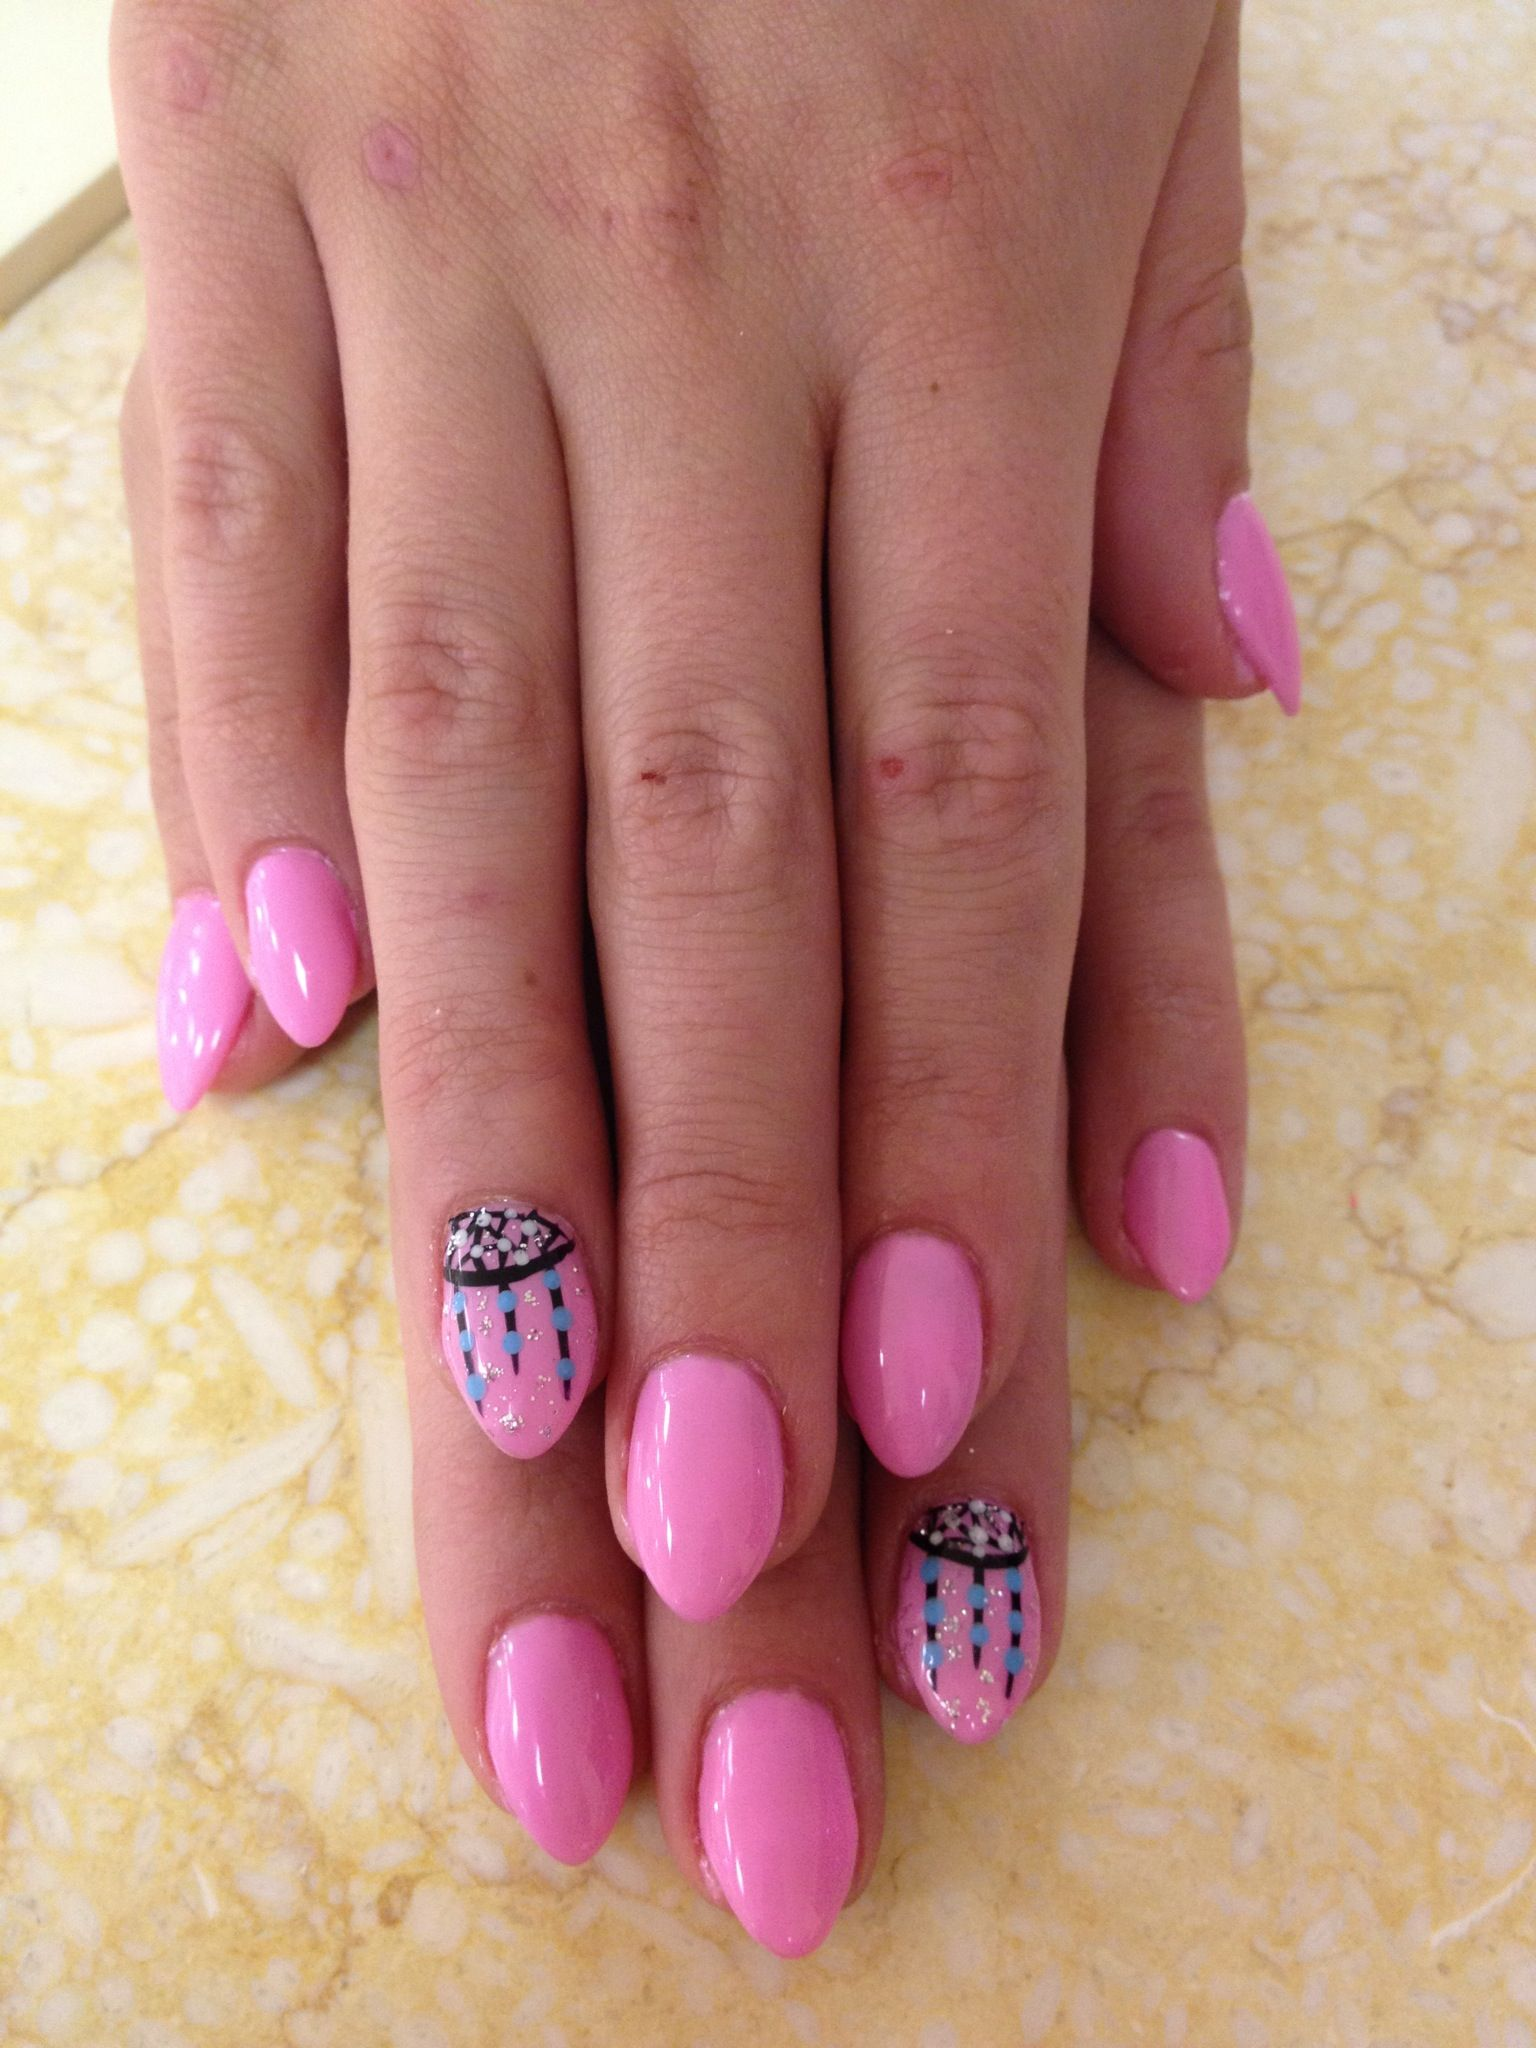 Stiletto Nails Fake Nails Matte Nails Blue Press On Nails: Pink Stiletto Nail Designs To Adore